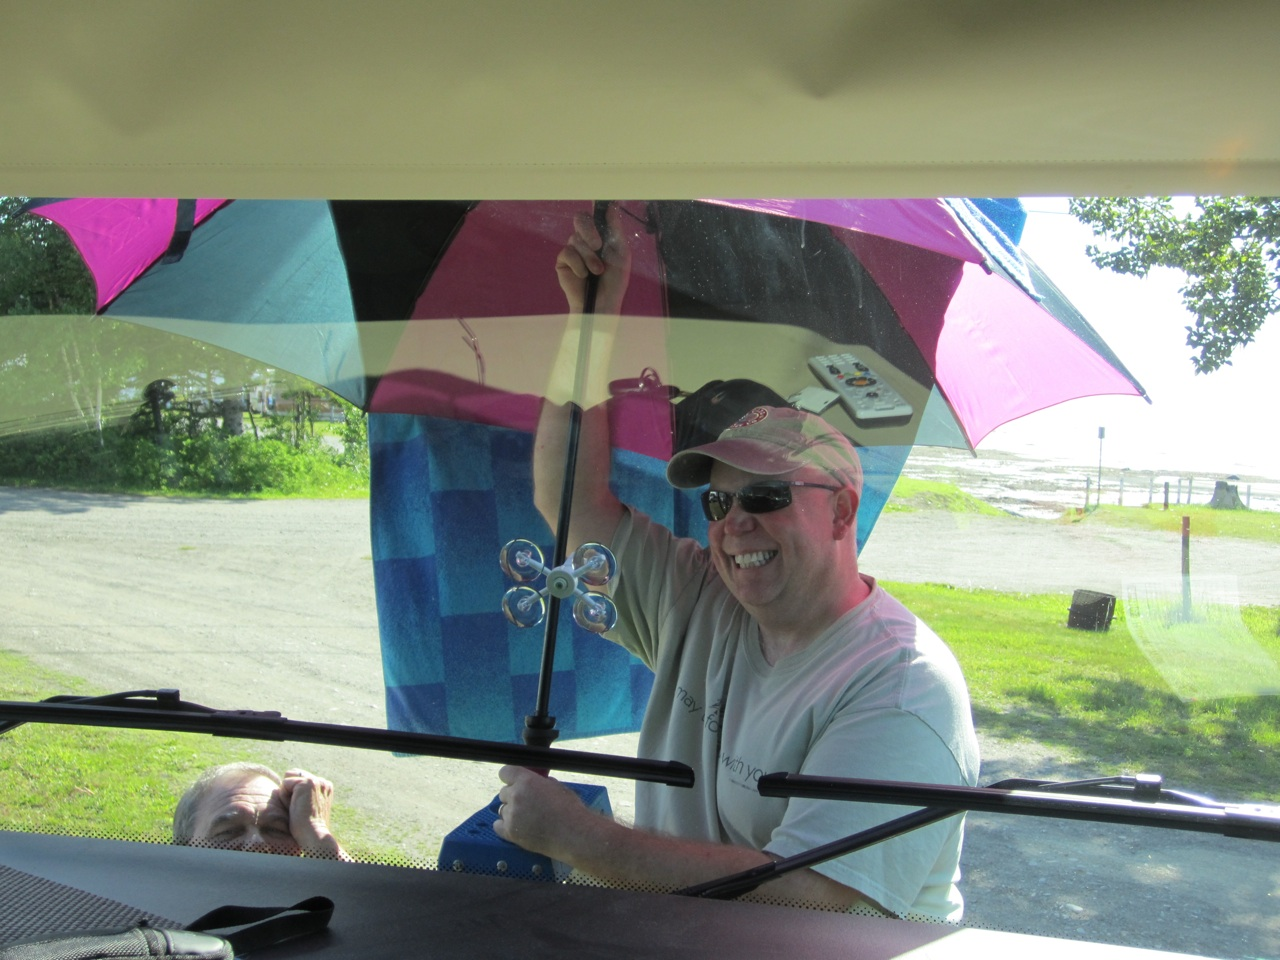 David Repairing A Chip In Our Friends RV Windshield